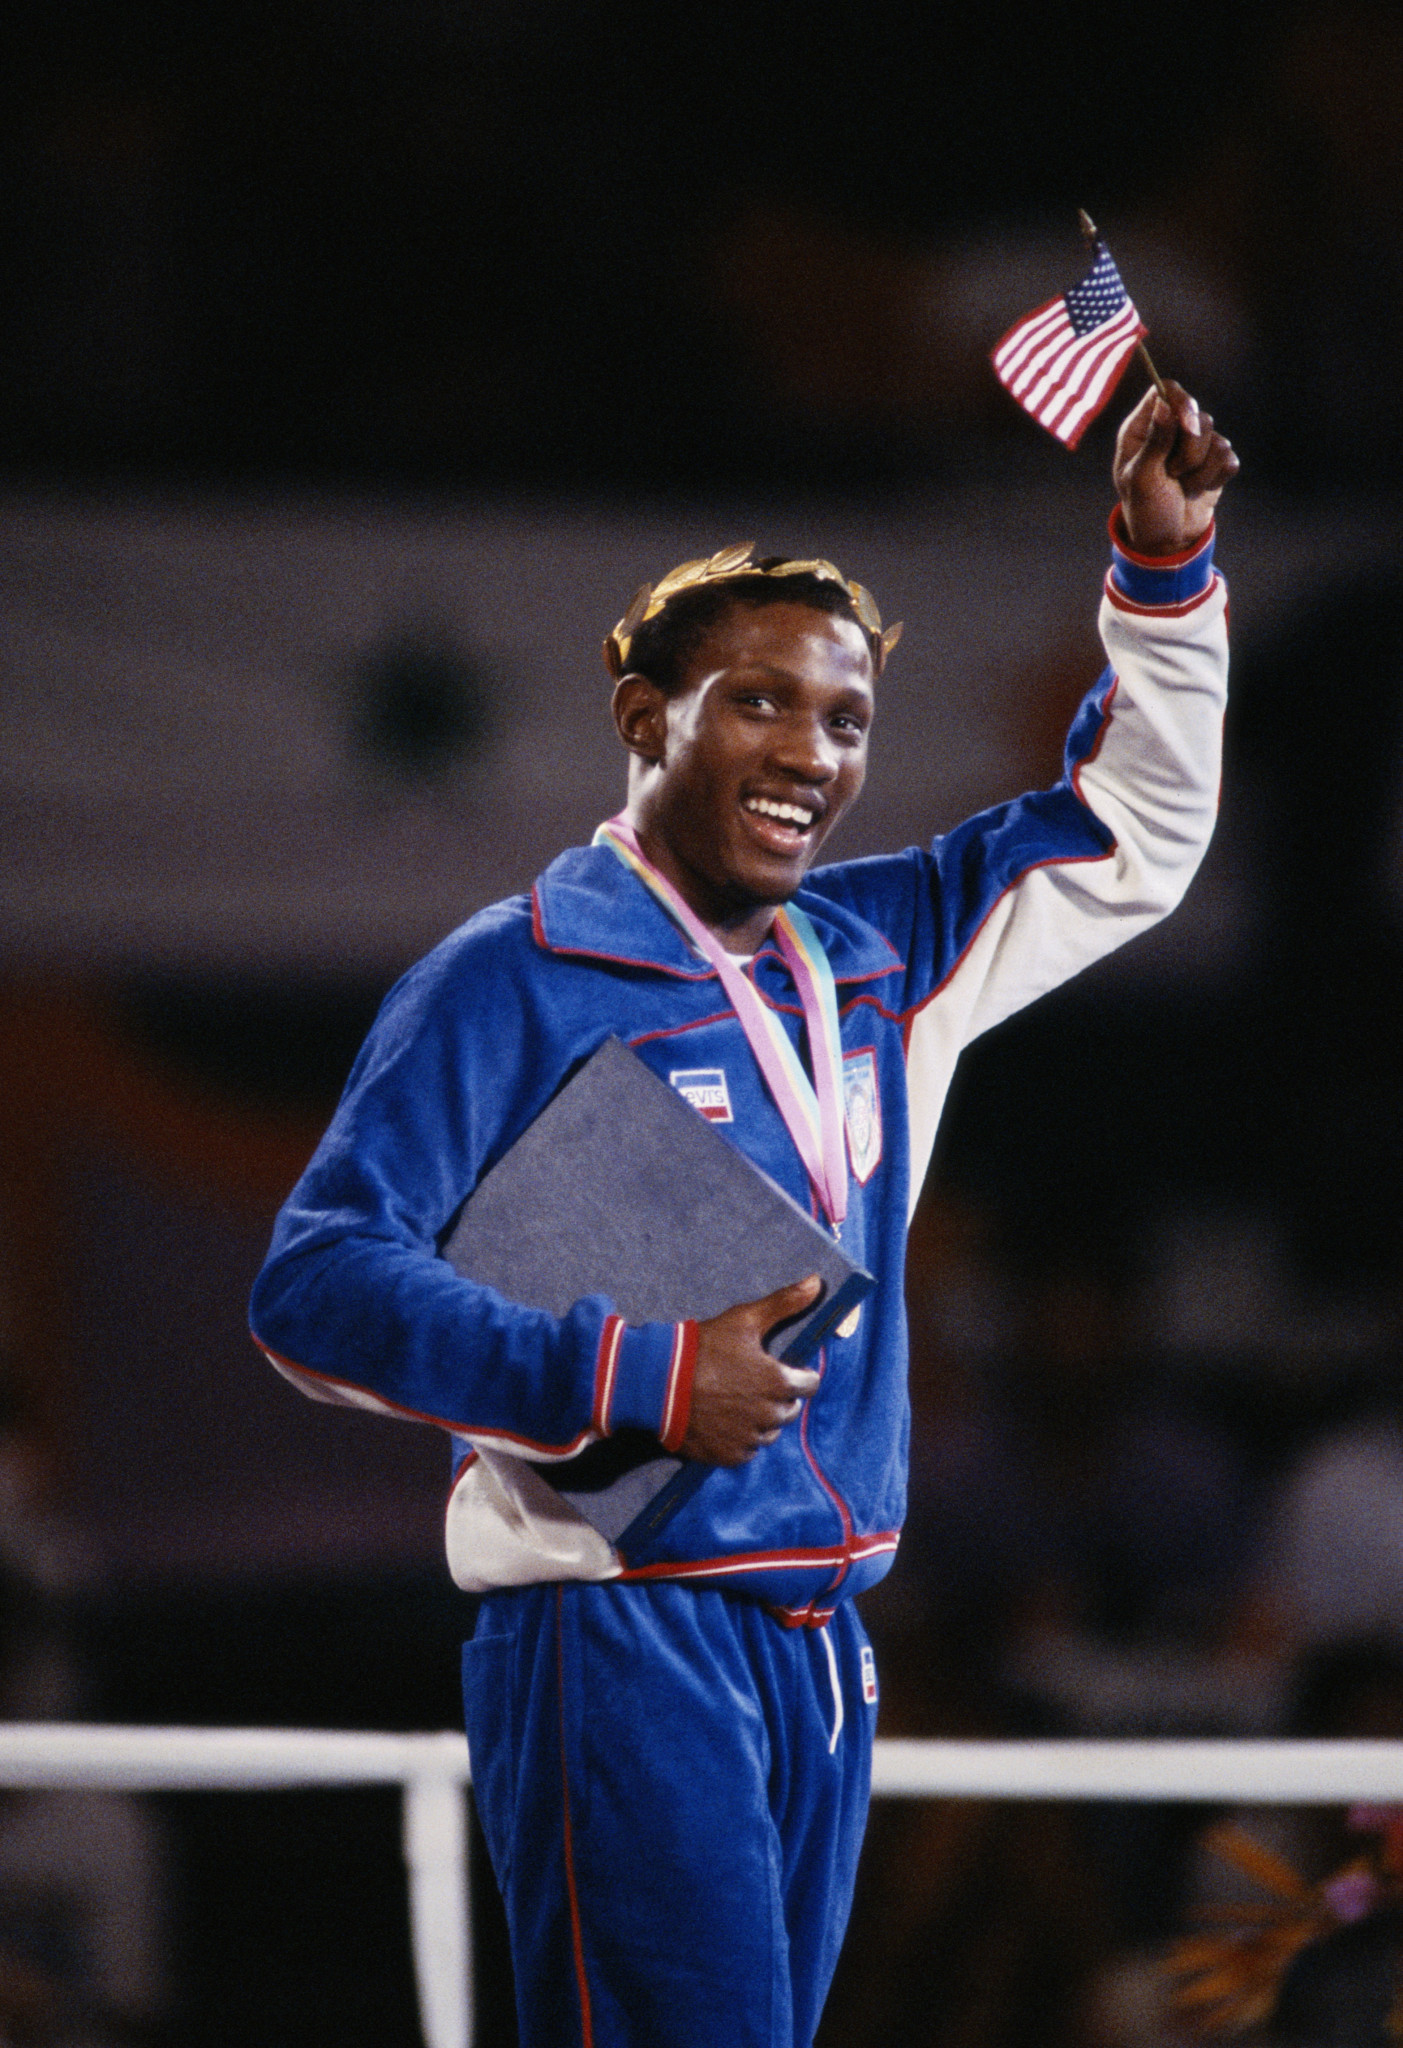 Pernell Whitaker was the lightweight gold medallist at the 1984 Olympic Games in Los Angeles ©Getty Images